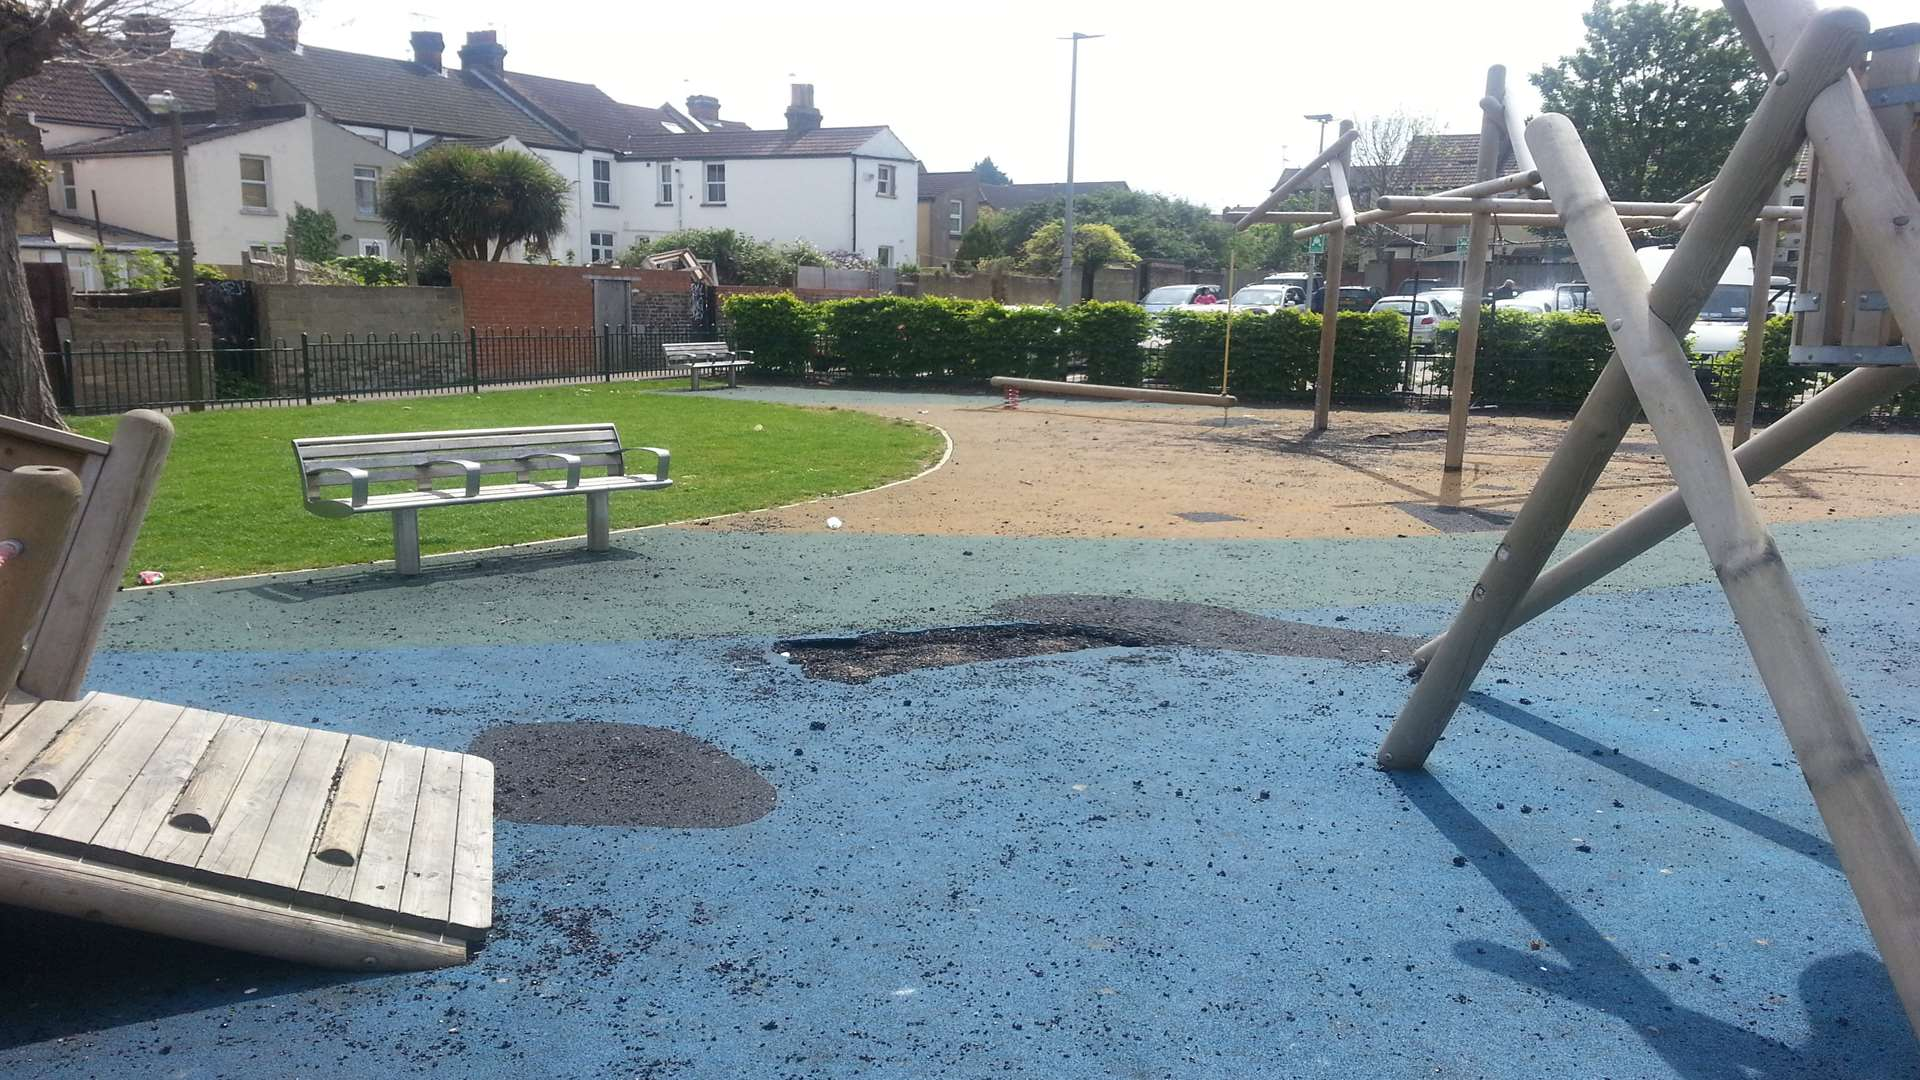 One resident said children are no longer being taken to the gardens because of the anti social behaviour